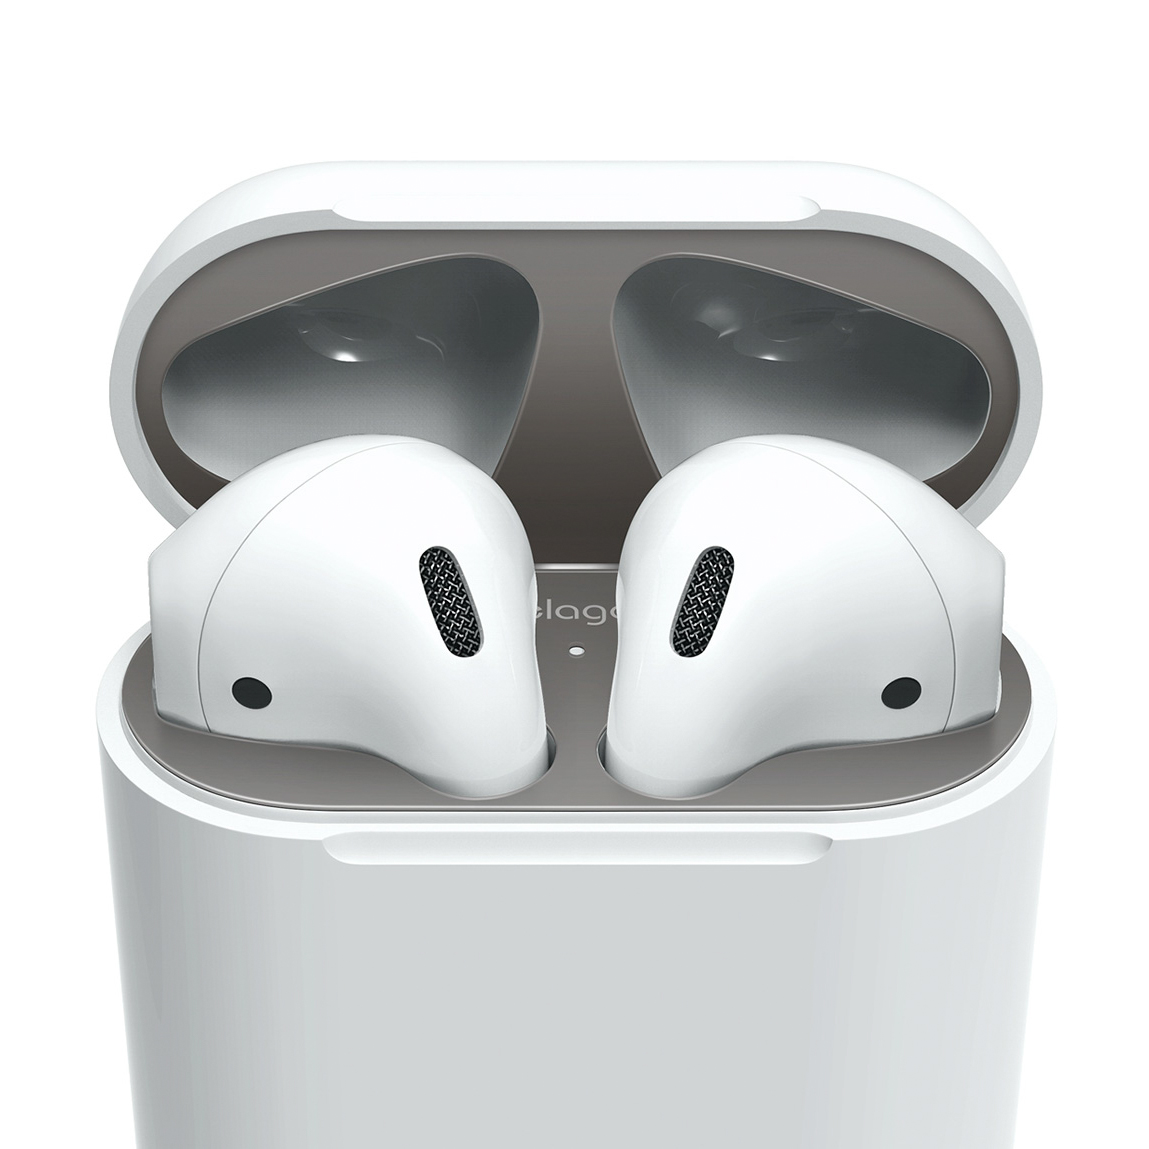 [Must Have Items - 2 Sets] AirPods Case + AirPods Dust Guard — elago